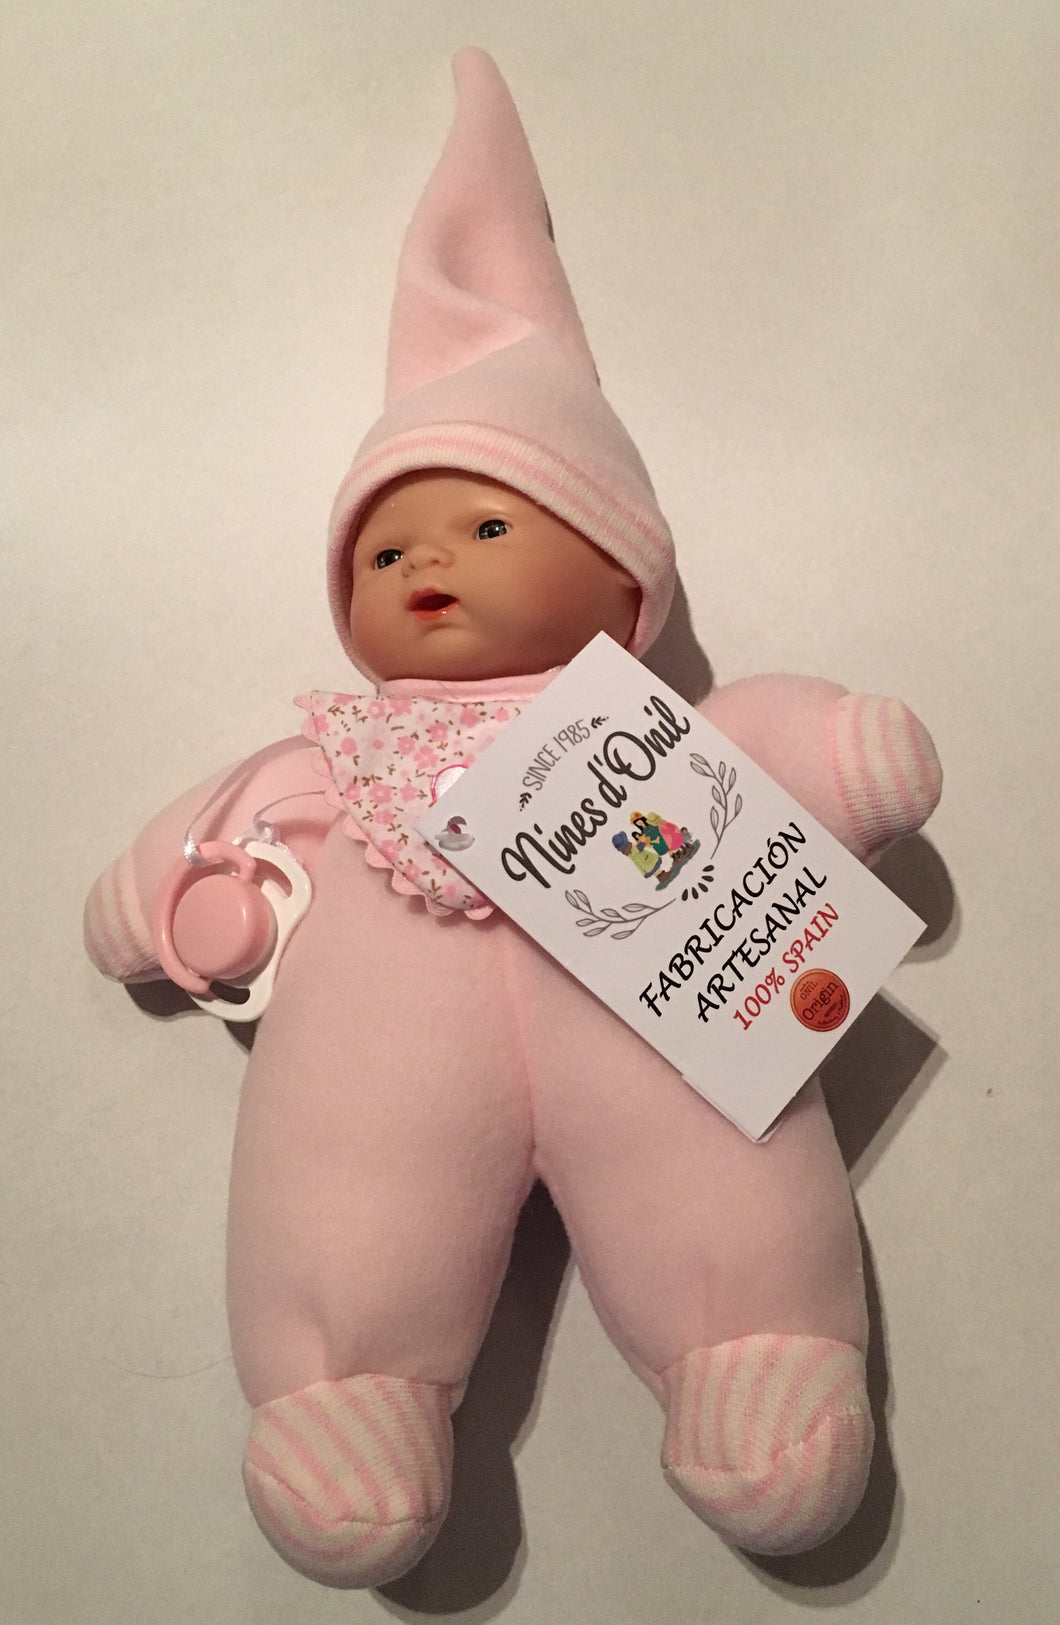 NINES 26cm Soft Full Bodied Spanish Doll in Pink Fabric with Striped Trim, Matching Hat, Contrasting Bib and Dummy